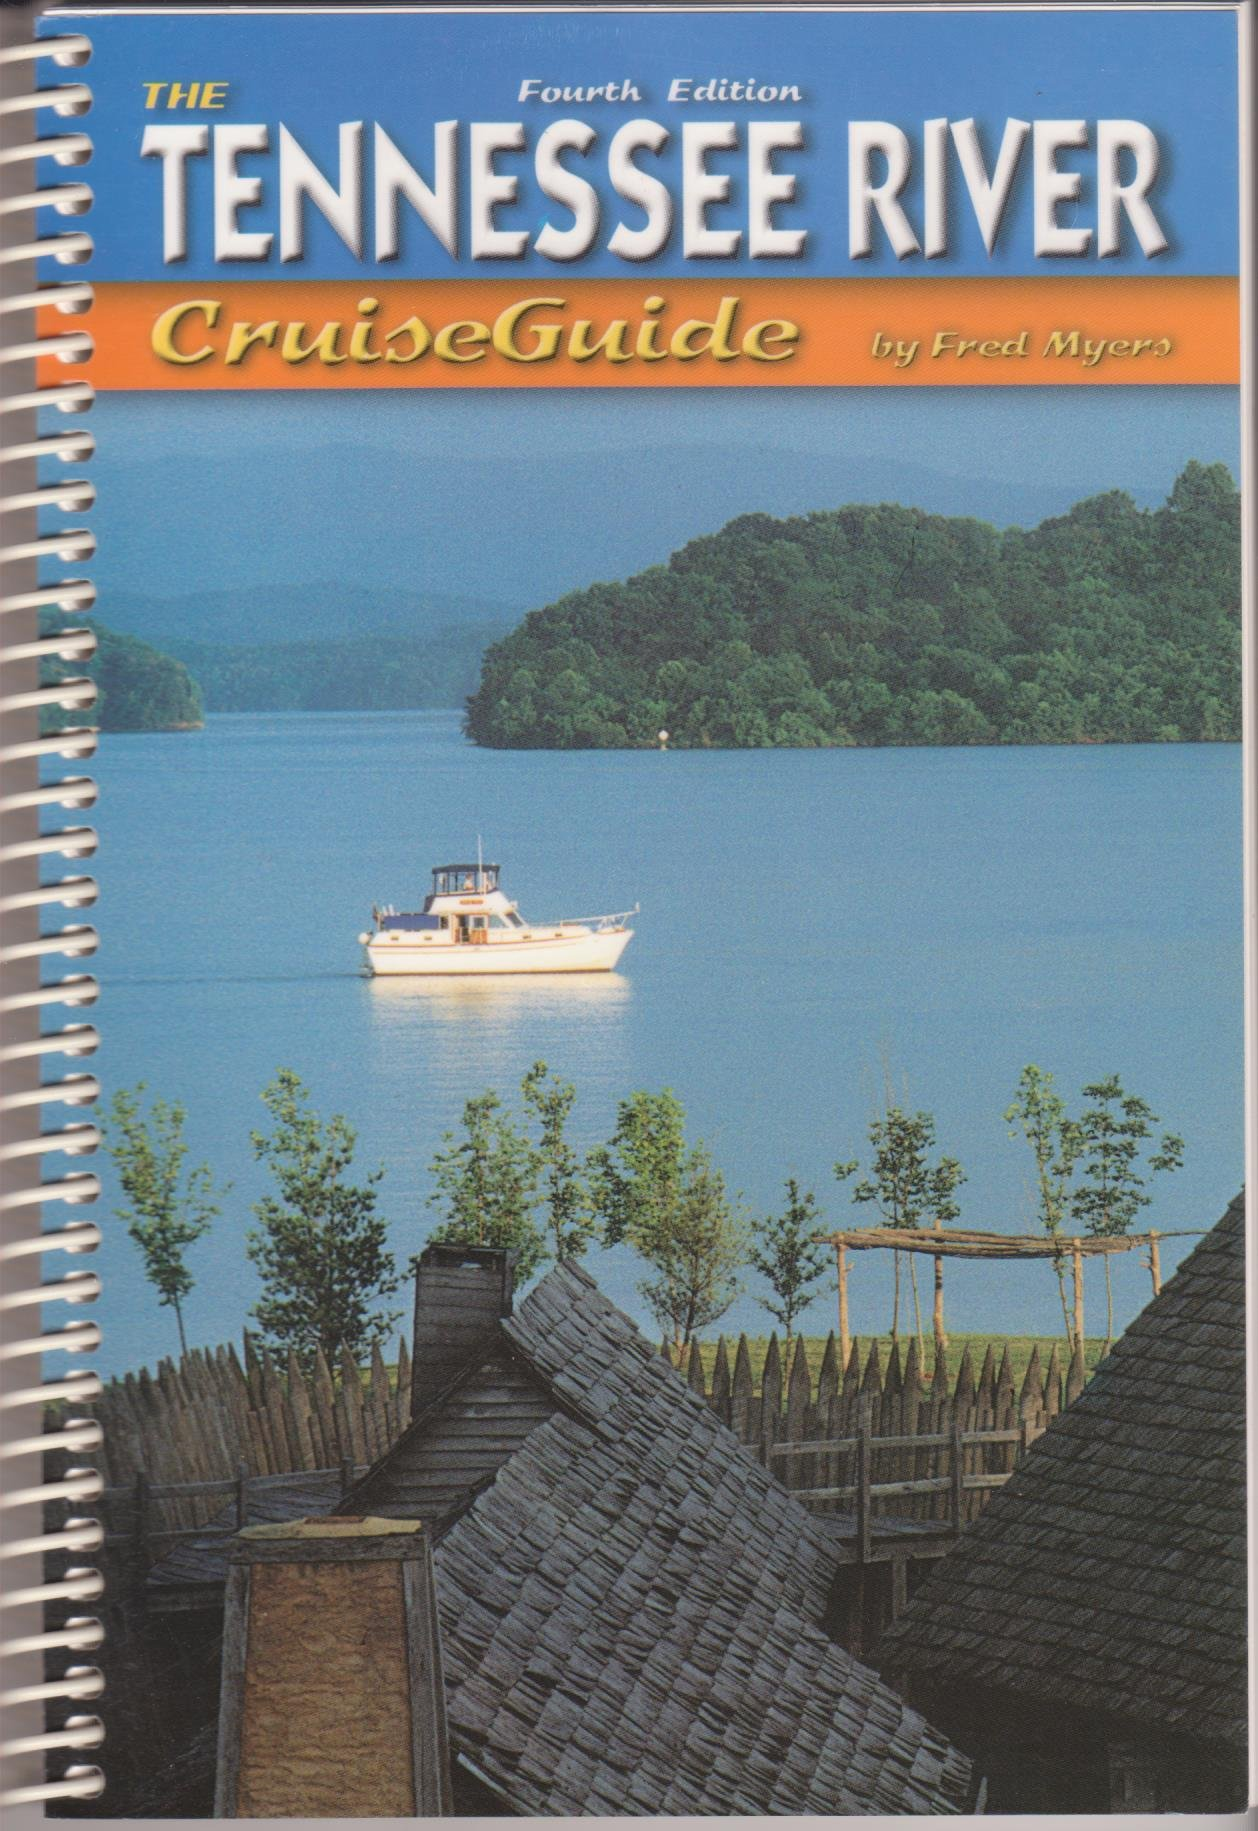 The Tennessee River cruiseguide